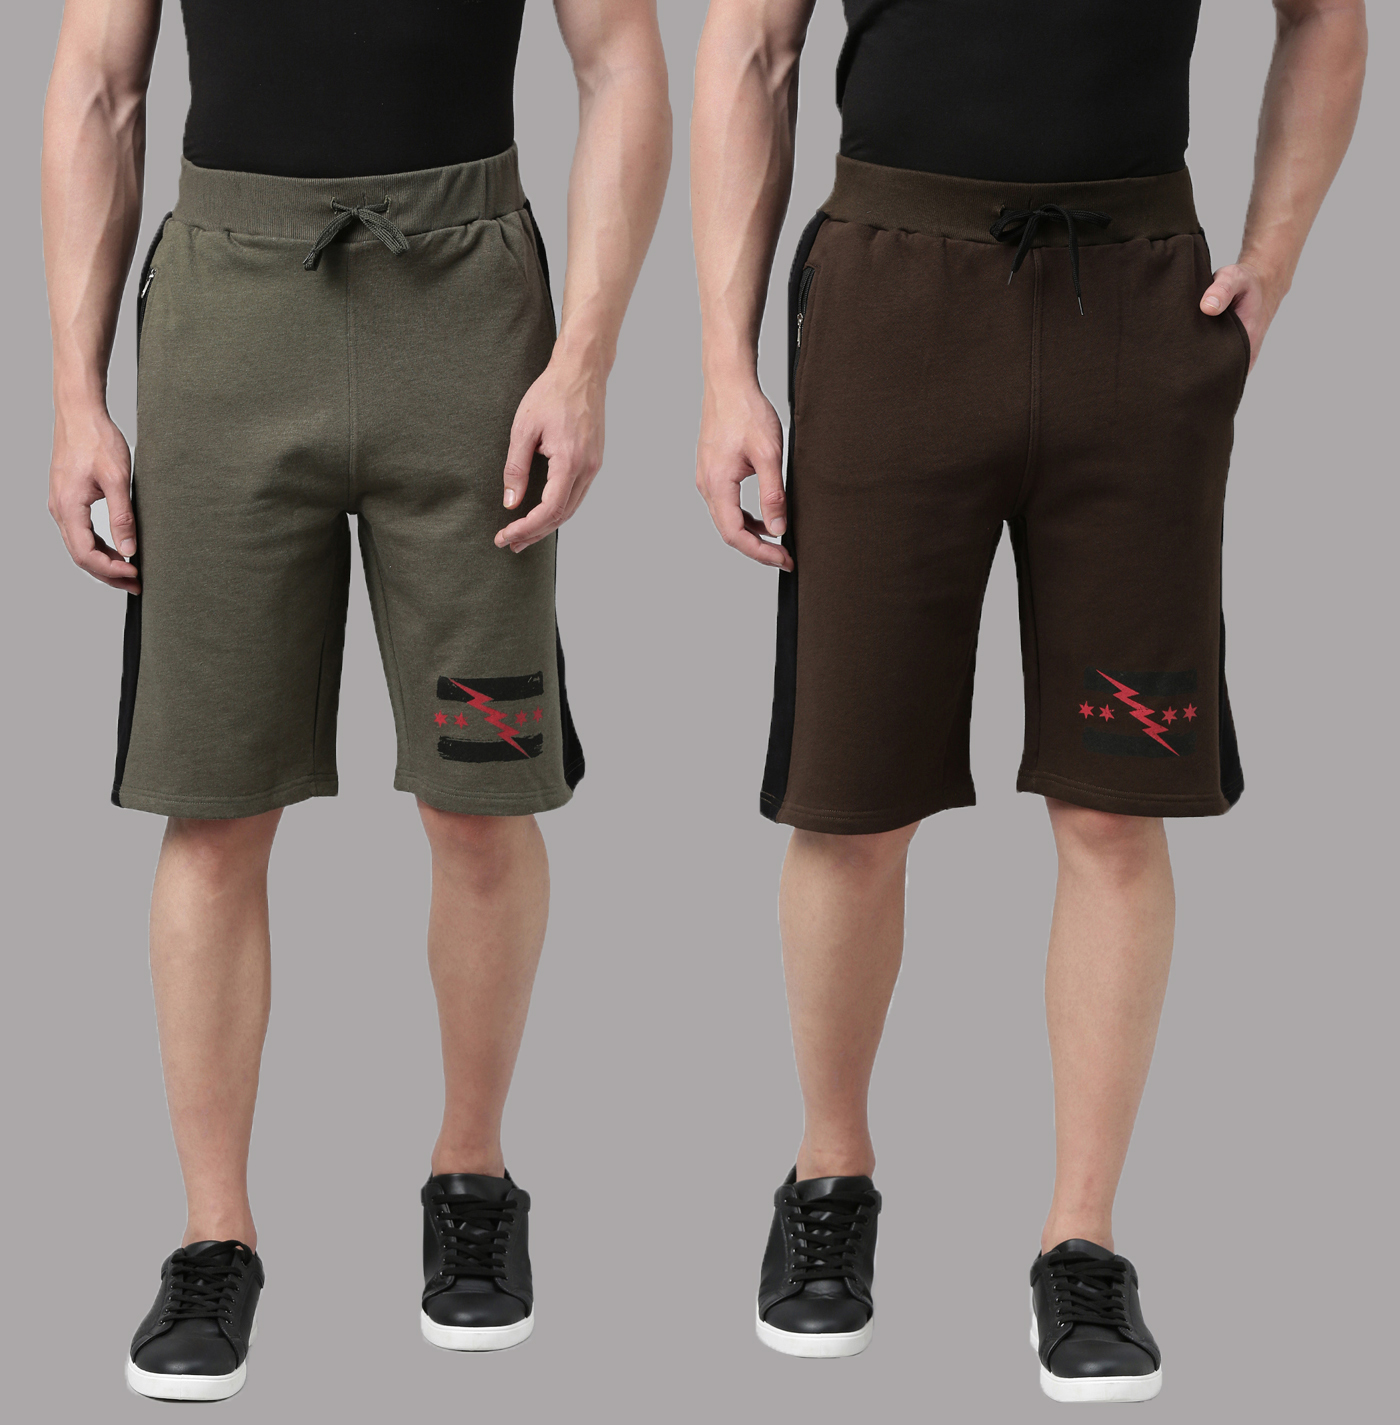 Kryptic | Kryptic Mens 100% Cotton graphic printed shorts - pack of 2